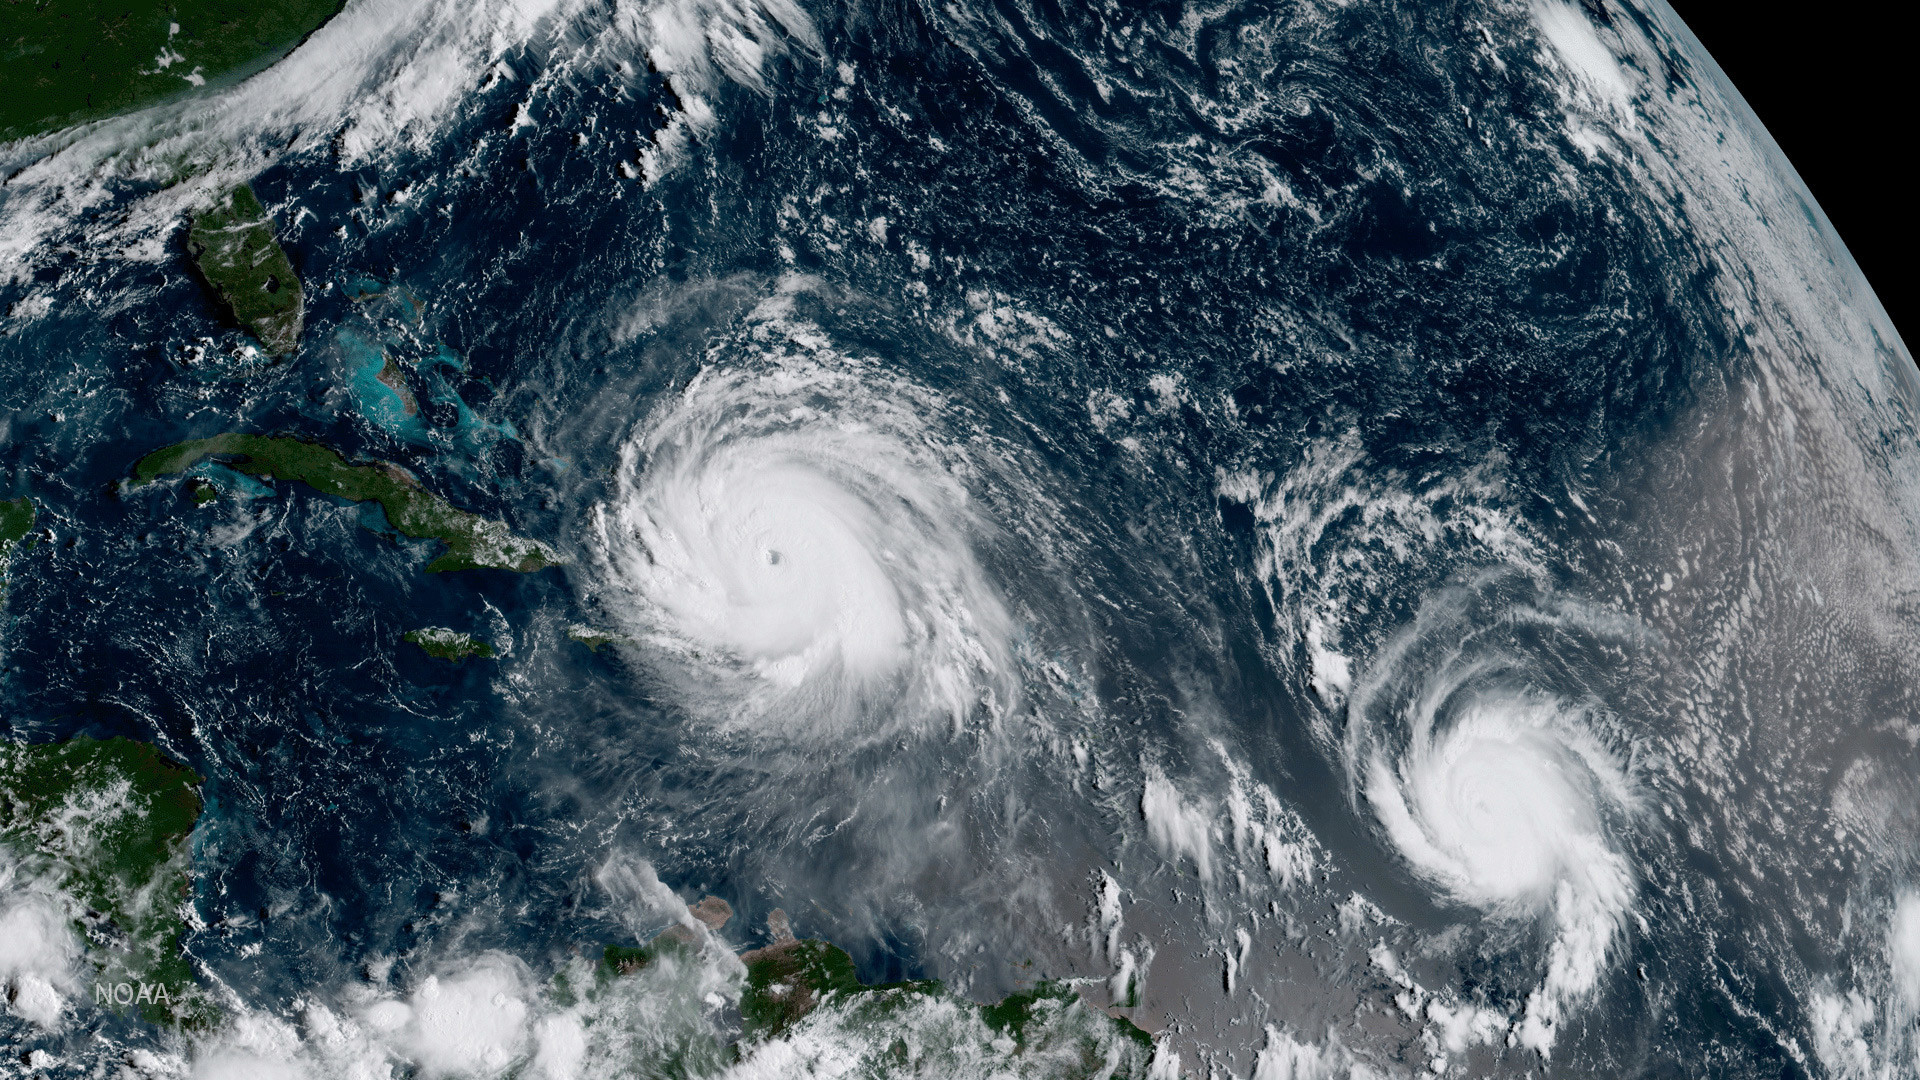 Hurricane Irma (L) and Hurricane Jose are pictured in the Atlantic Ocean in this September 7, 2017